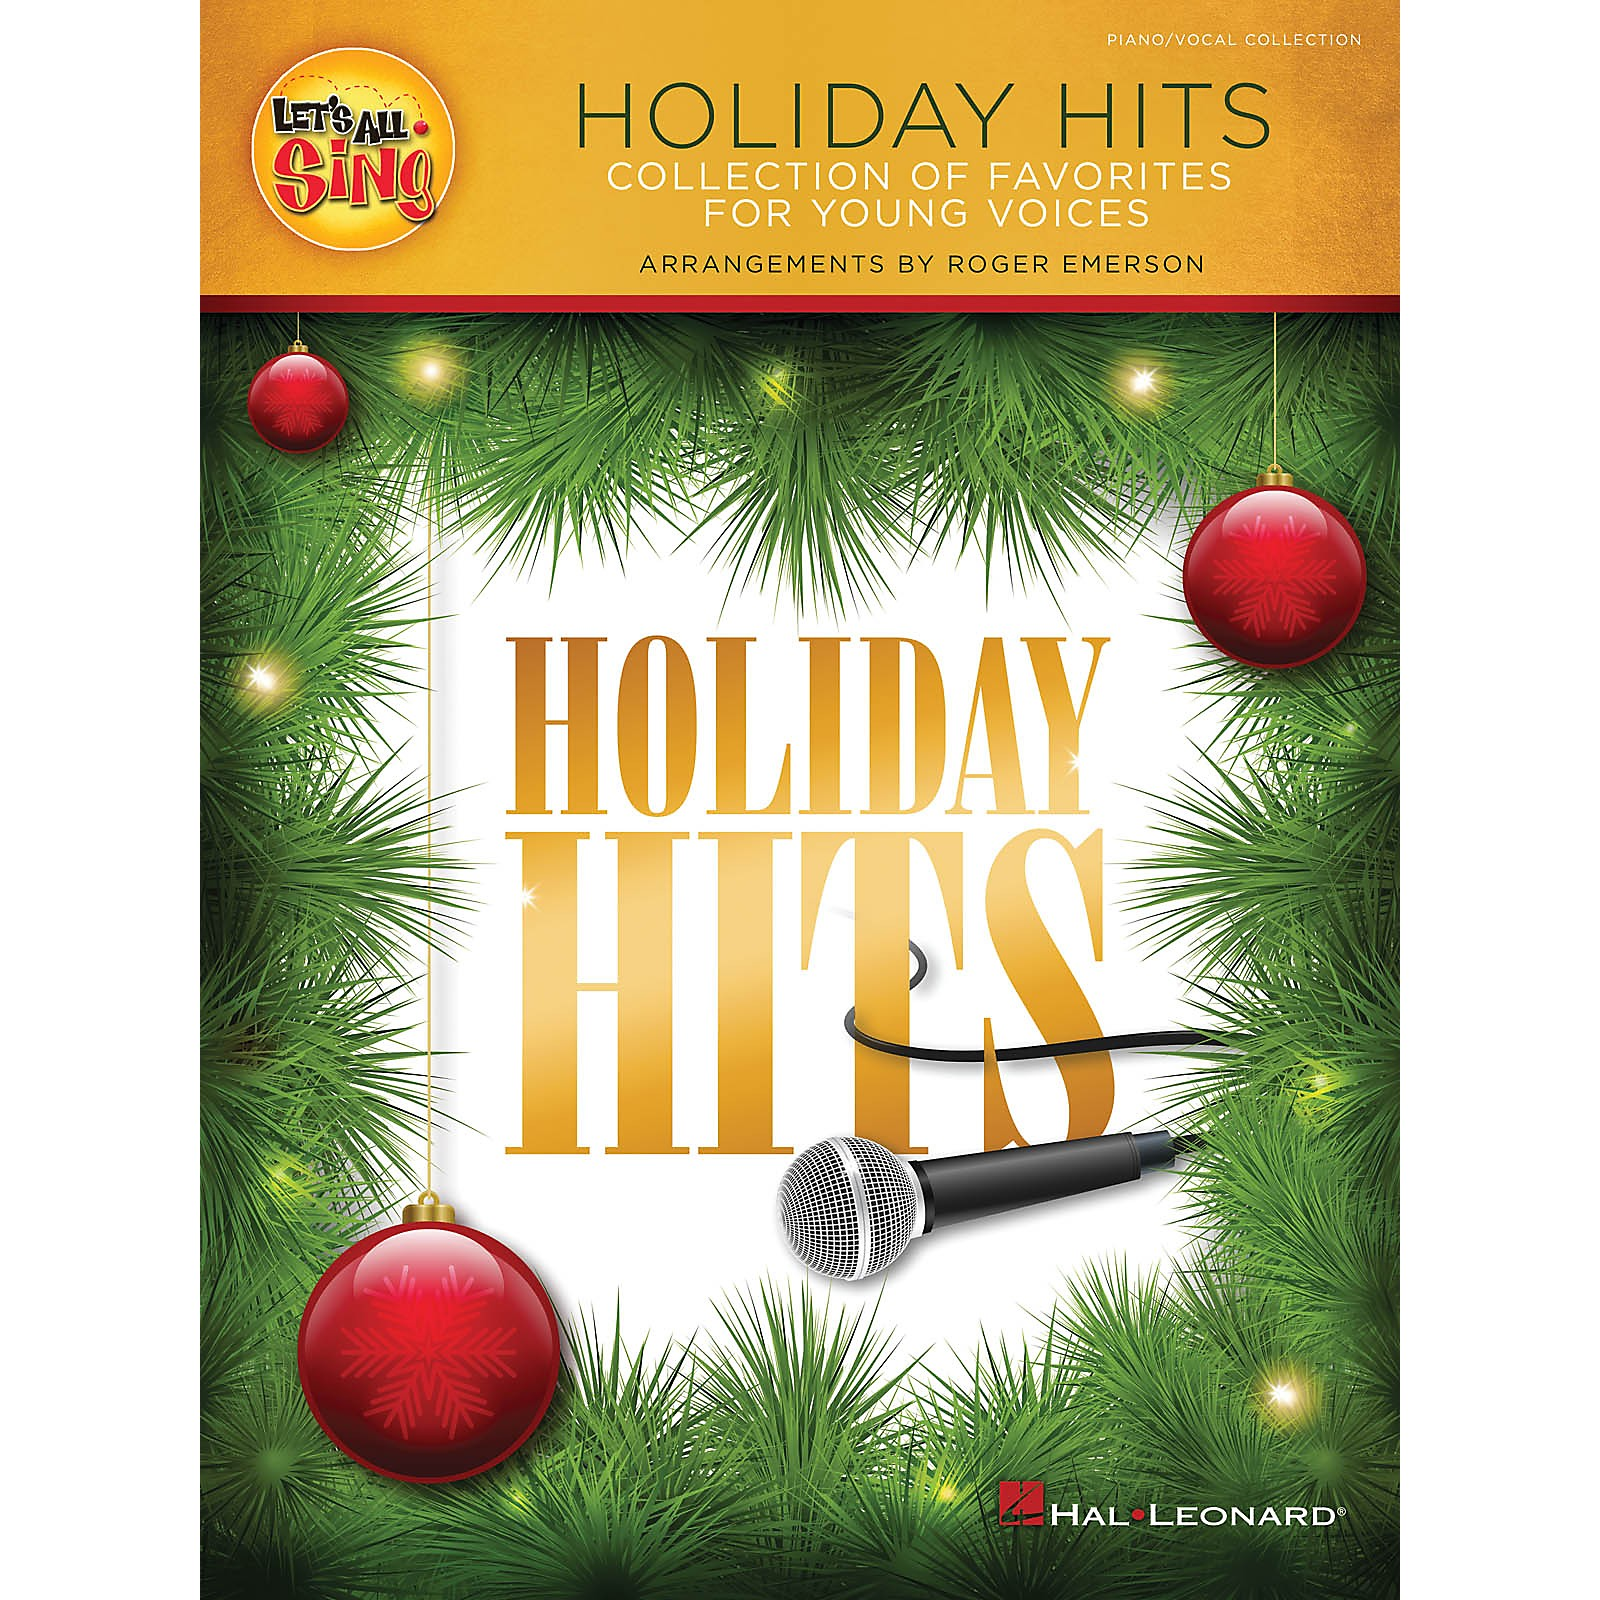 Hal Leonard Let's All Sing Holiday Hits (Collection of ...